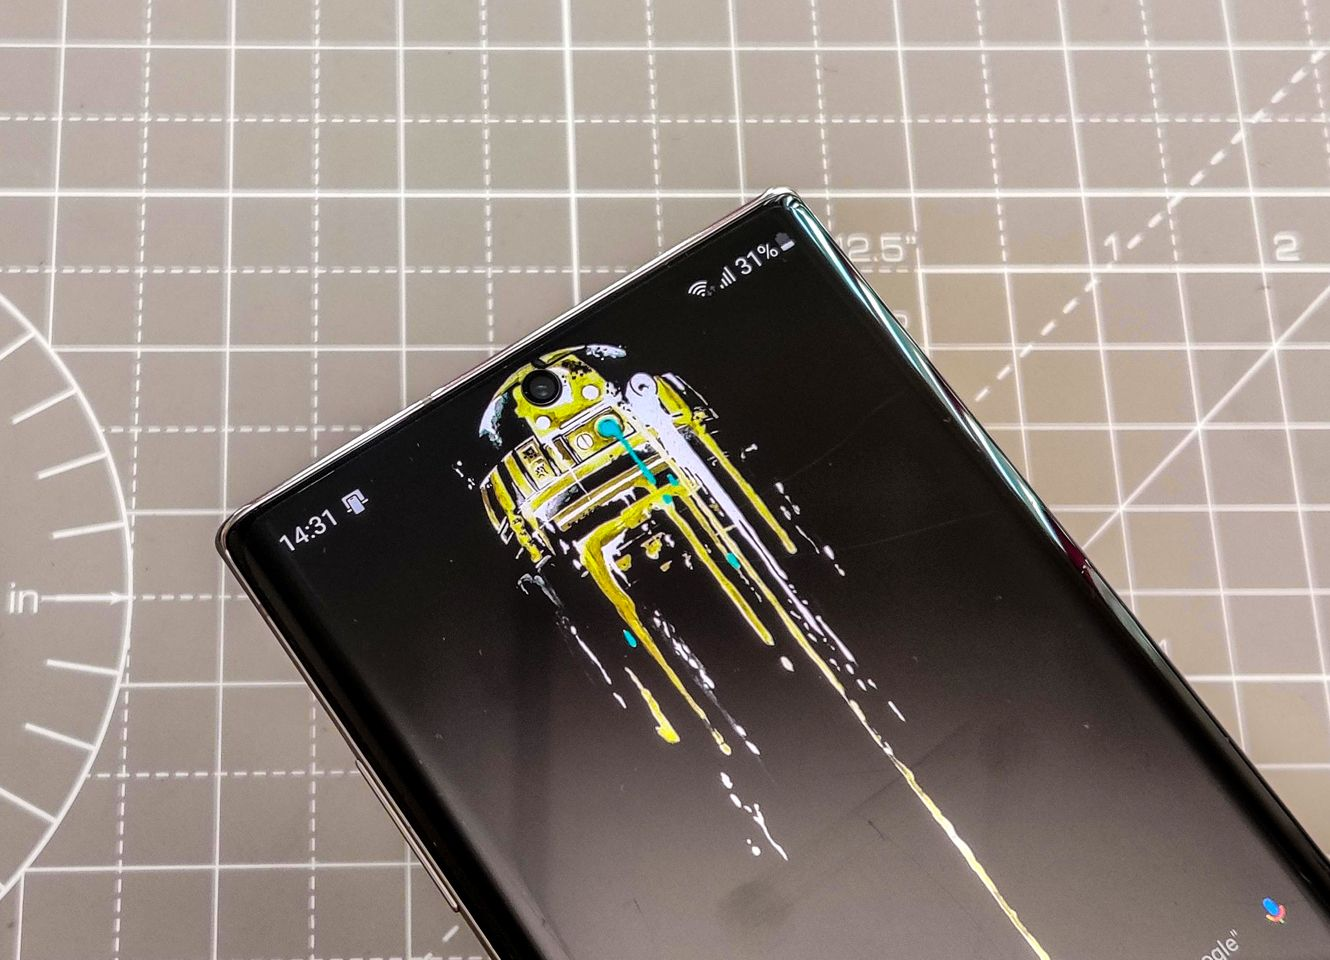 6 Best Wallpaper Apps For The Samsung Galaxy Note 10 And Galaxy Note Samsung Galaxy Note 10 And Note 10 Carry Galaxy Note Samsung Galaxy Galaxy Note 10